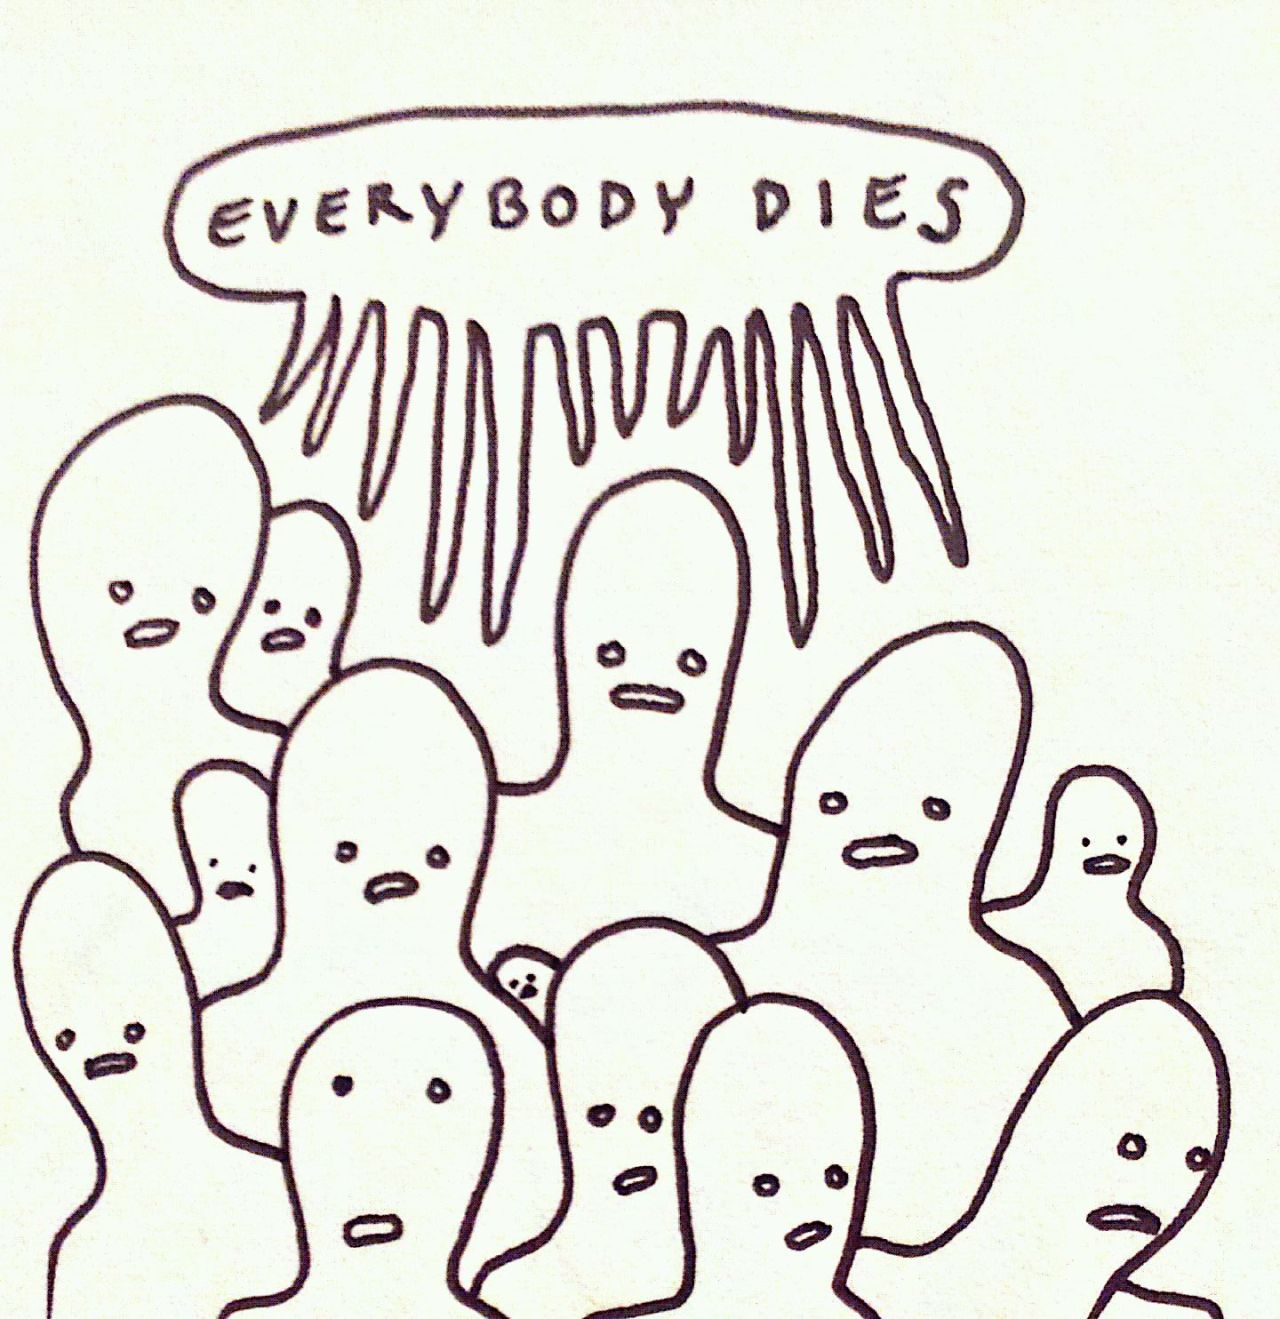 bloodfarm:  Everybody dies, 2013